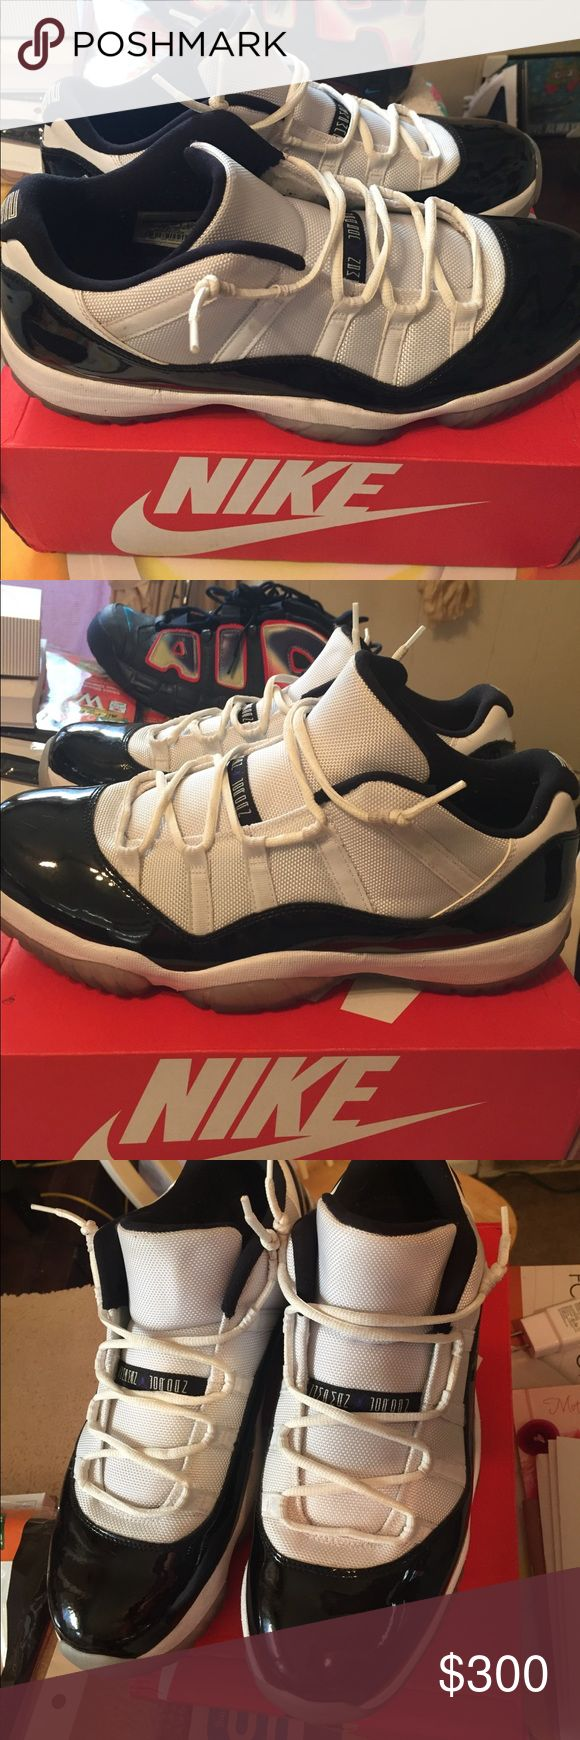 Air Jordan retro 11 low concord. Air Jordan retro 11 low concord. Jordan Shoes Athletic Shoes